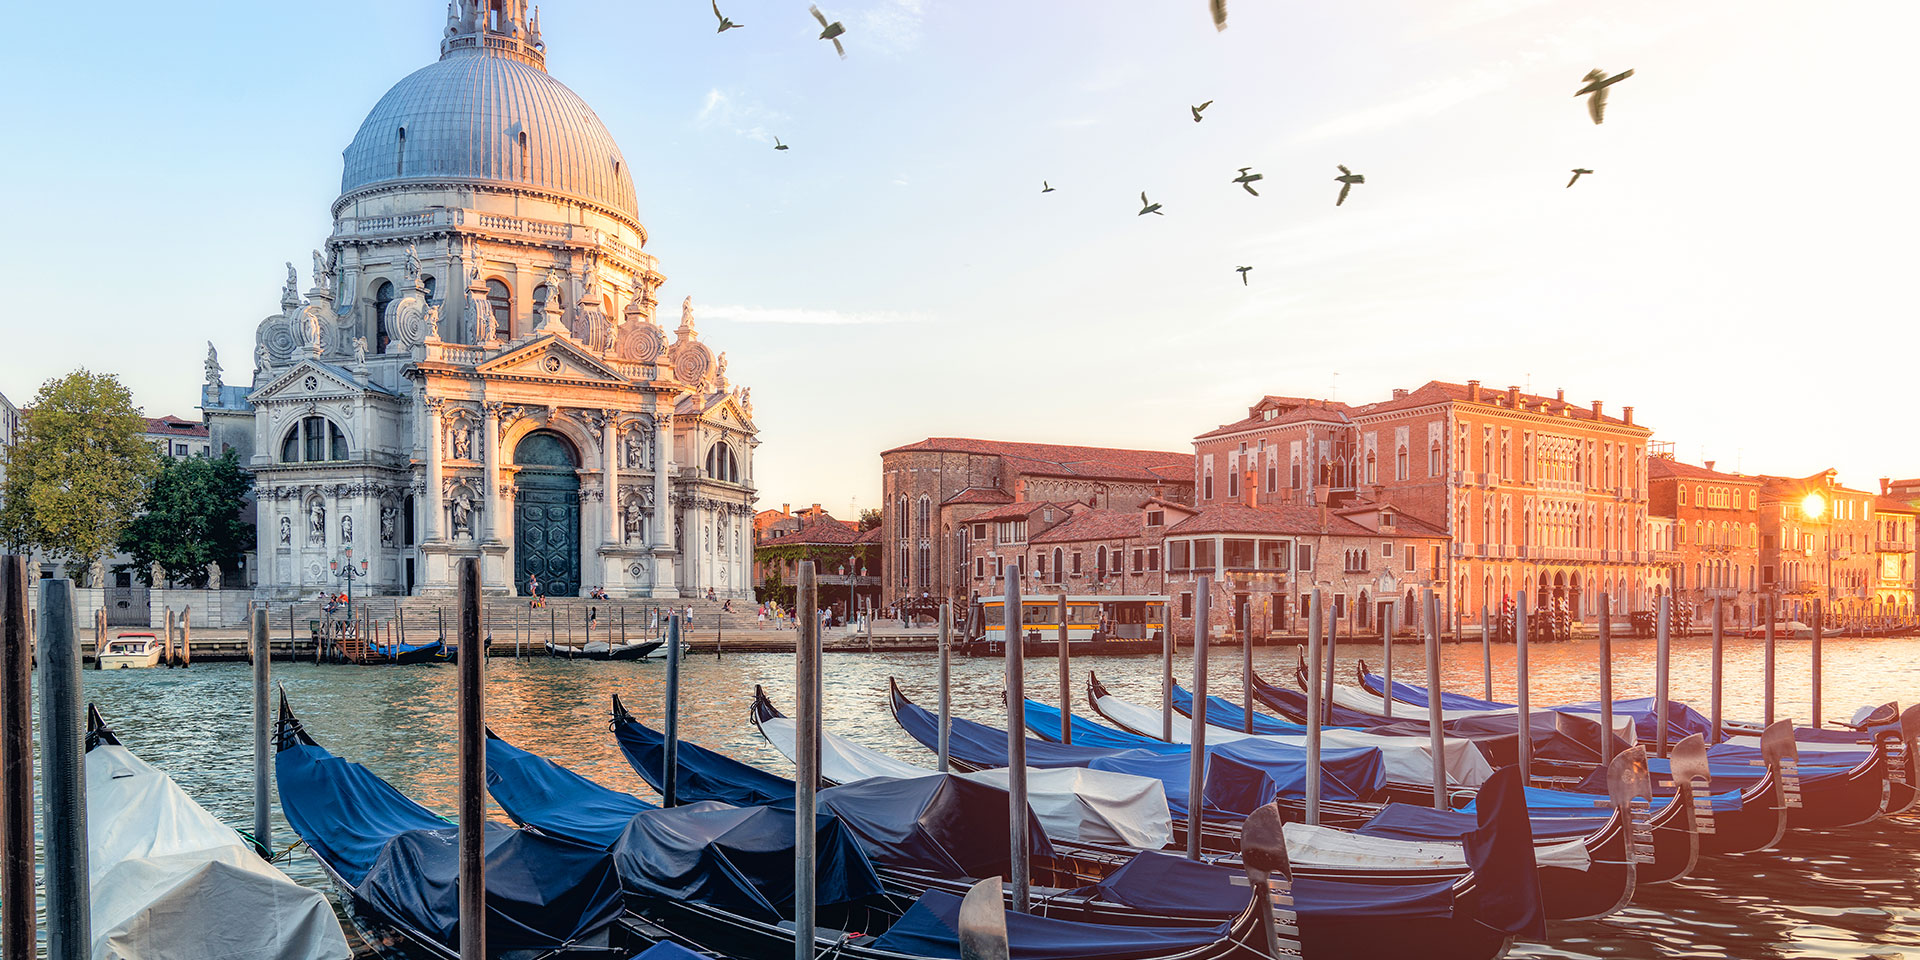 Explore Dorsoduro's church of Santa Maria Della Salute. (Photo: Getty Images)